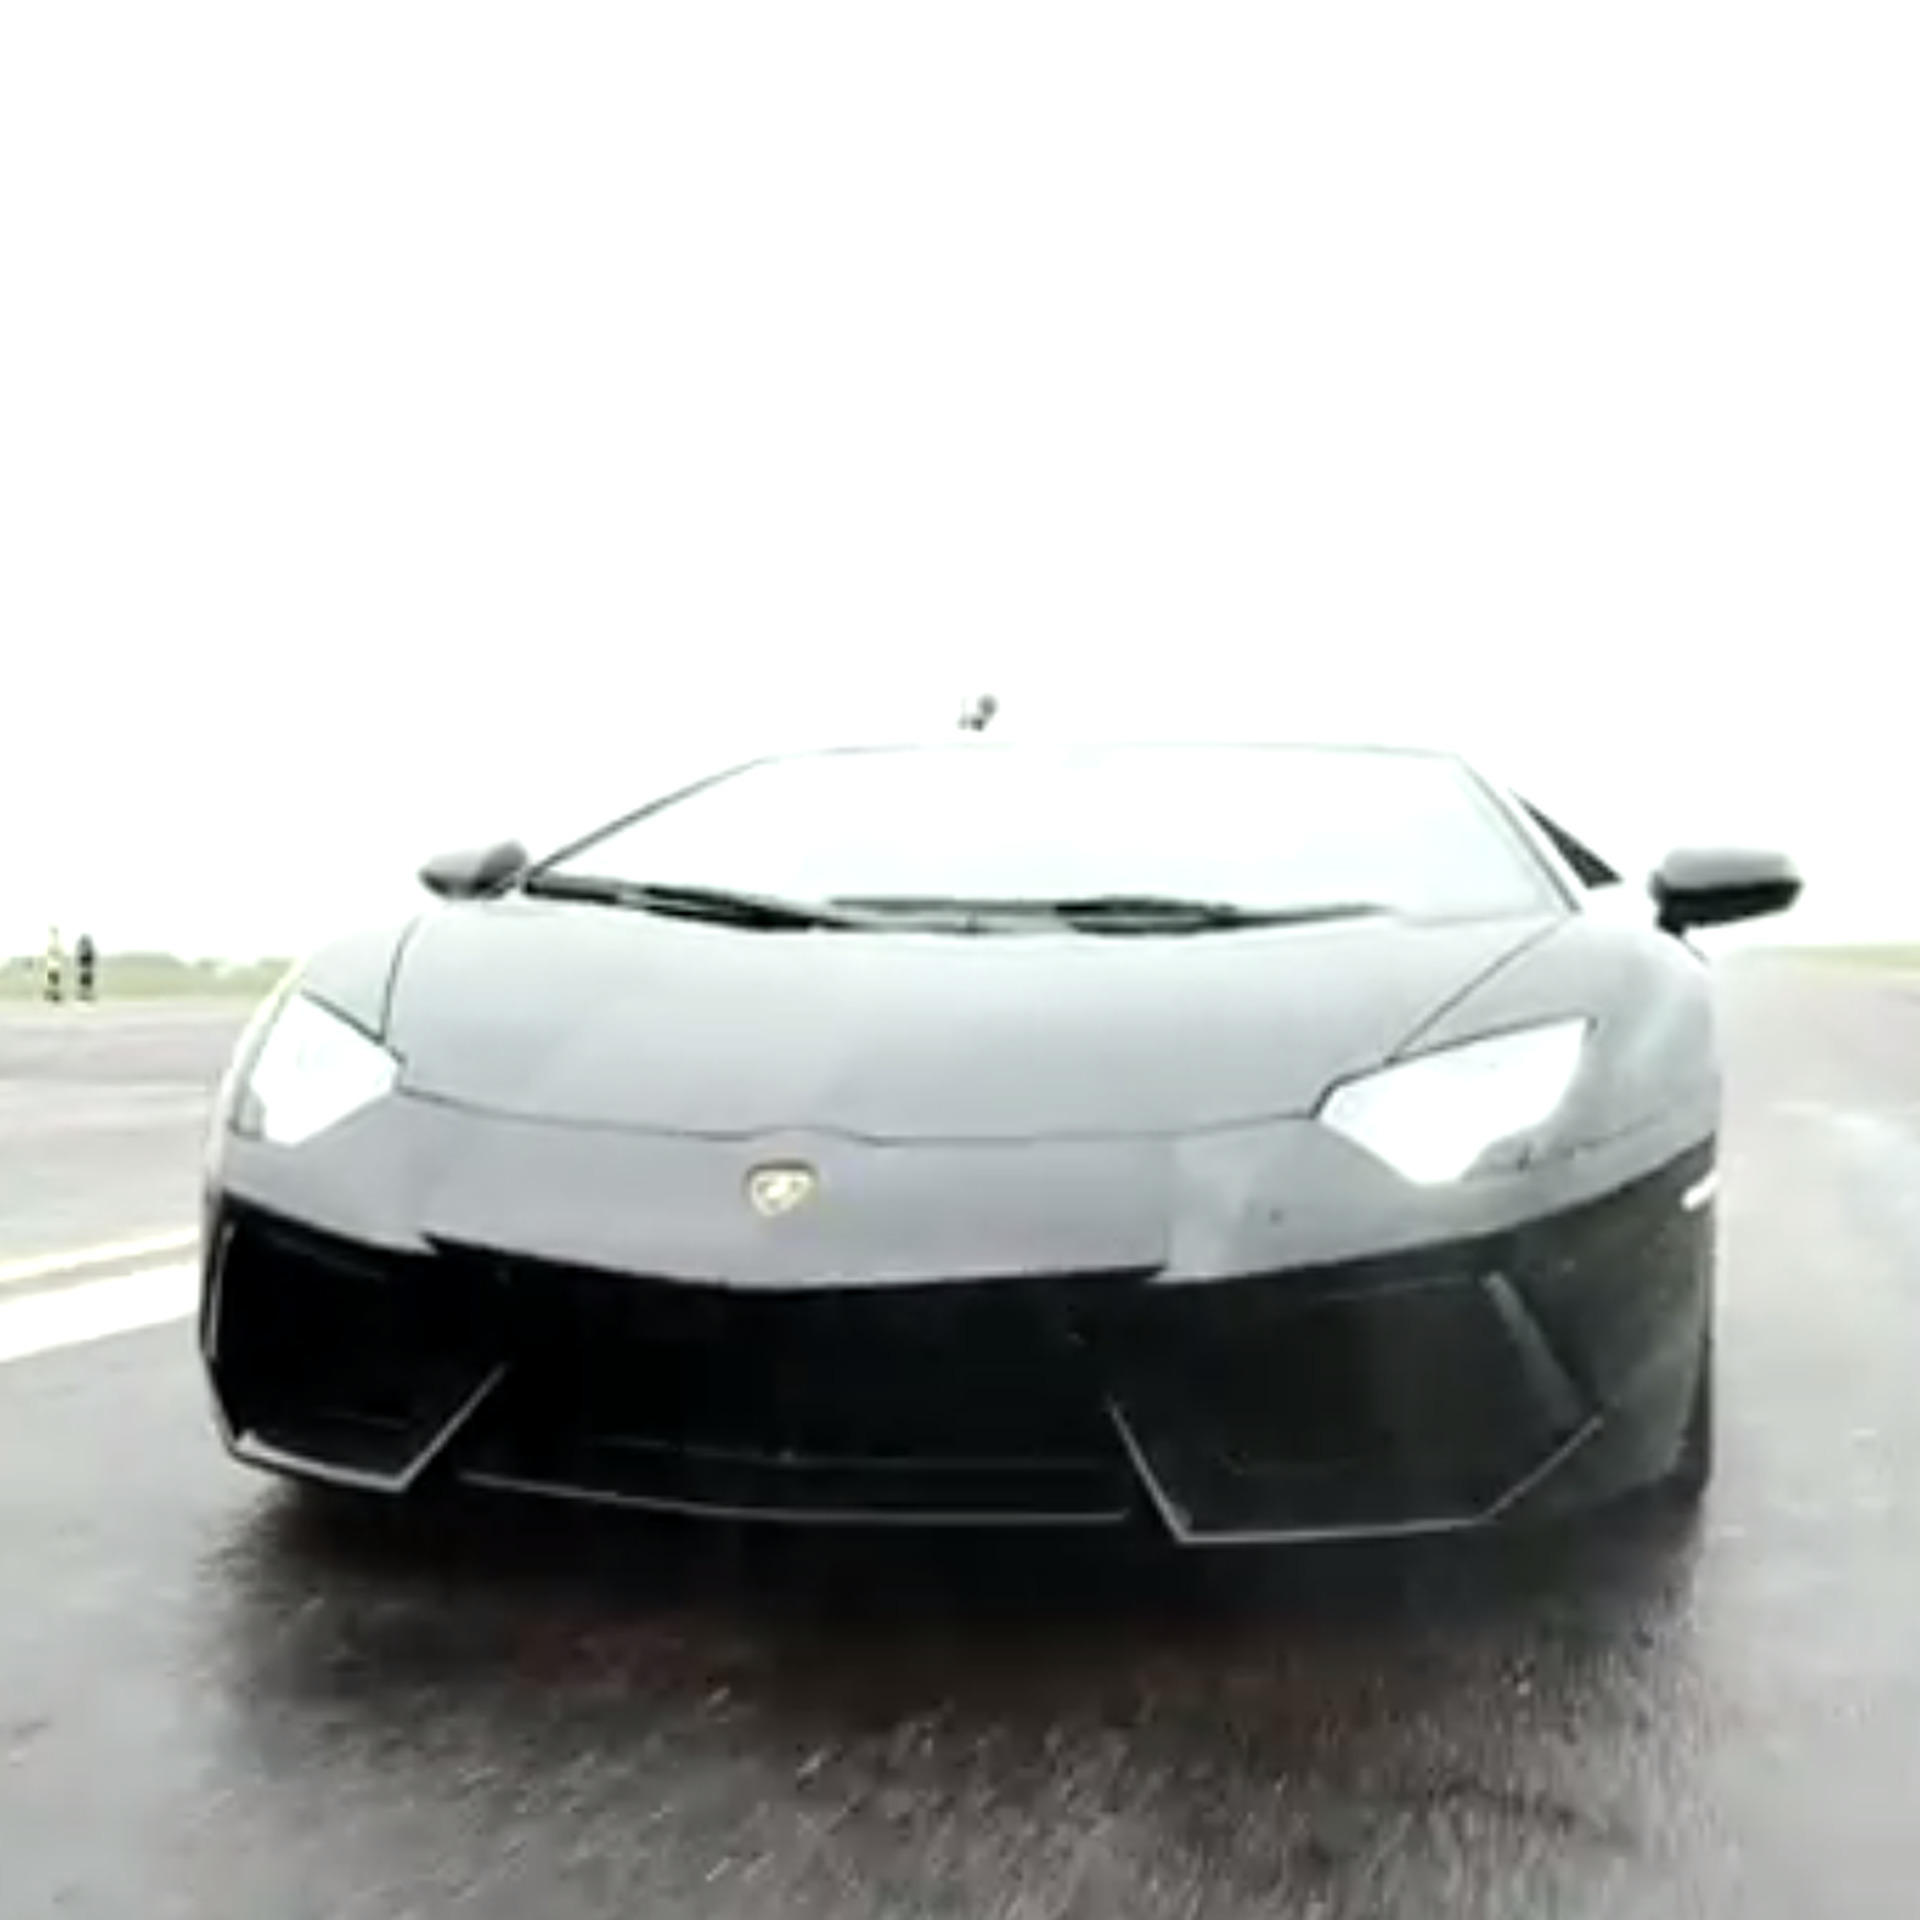 Video Lamborghini Aventador Vs F16 Fighter Jet